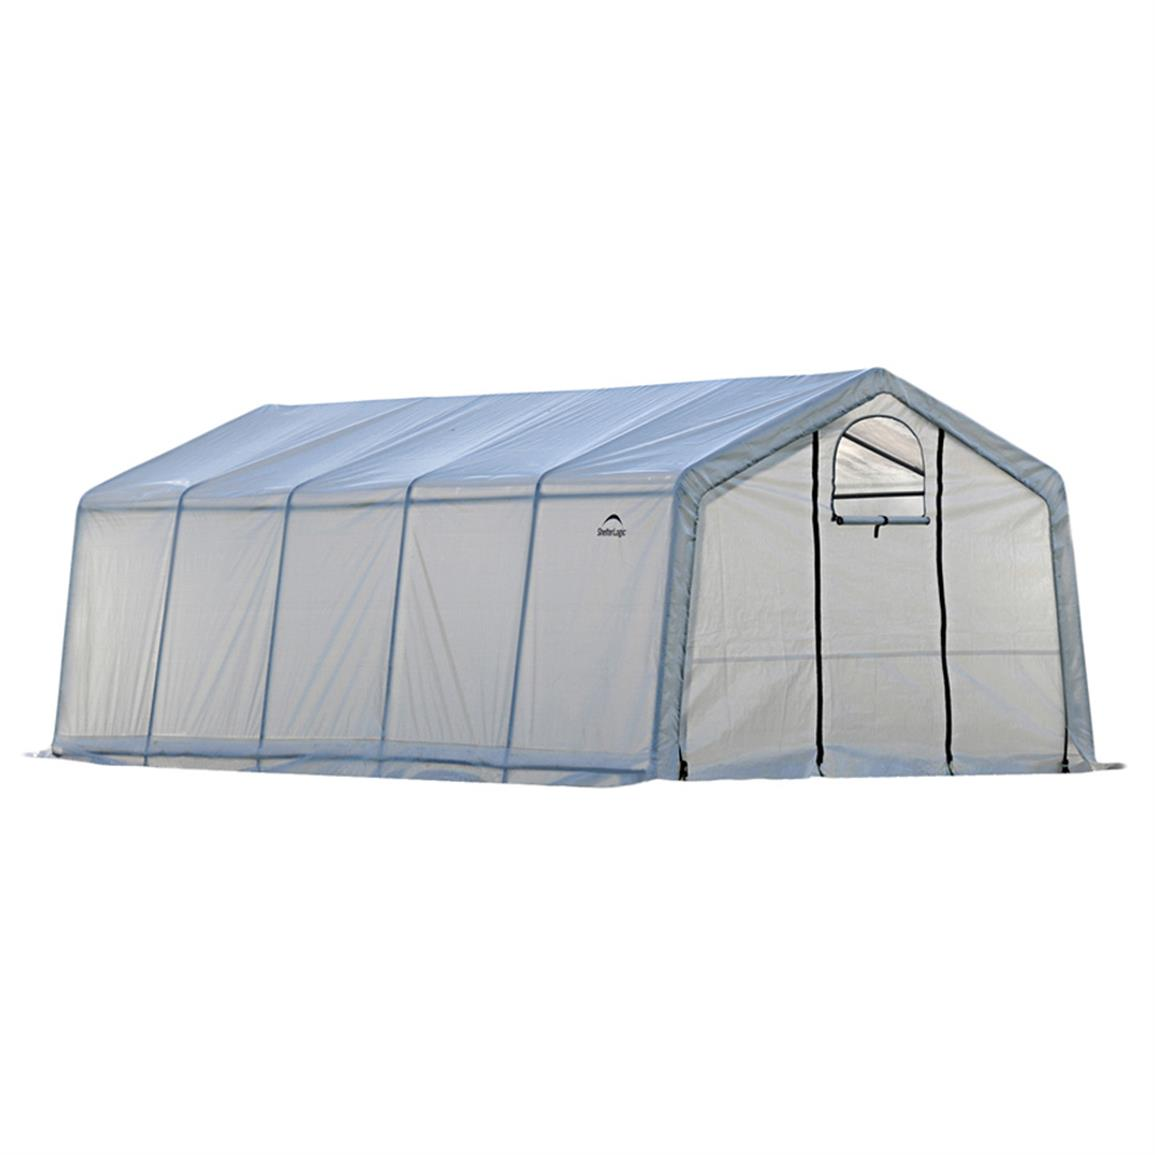 ShelterLogic GrowIT Greenhouse-In-A-Box Pro, 12 foot x 20 foot x 8 foot h